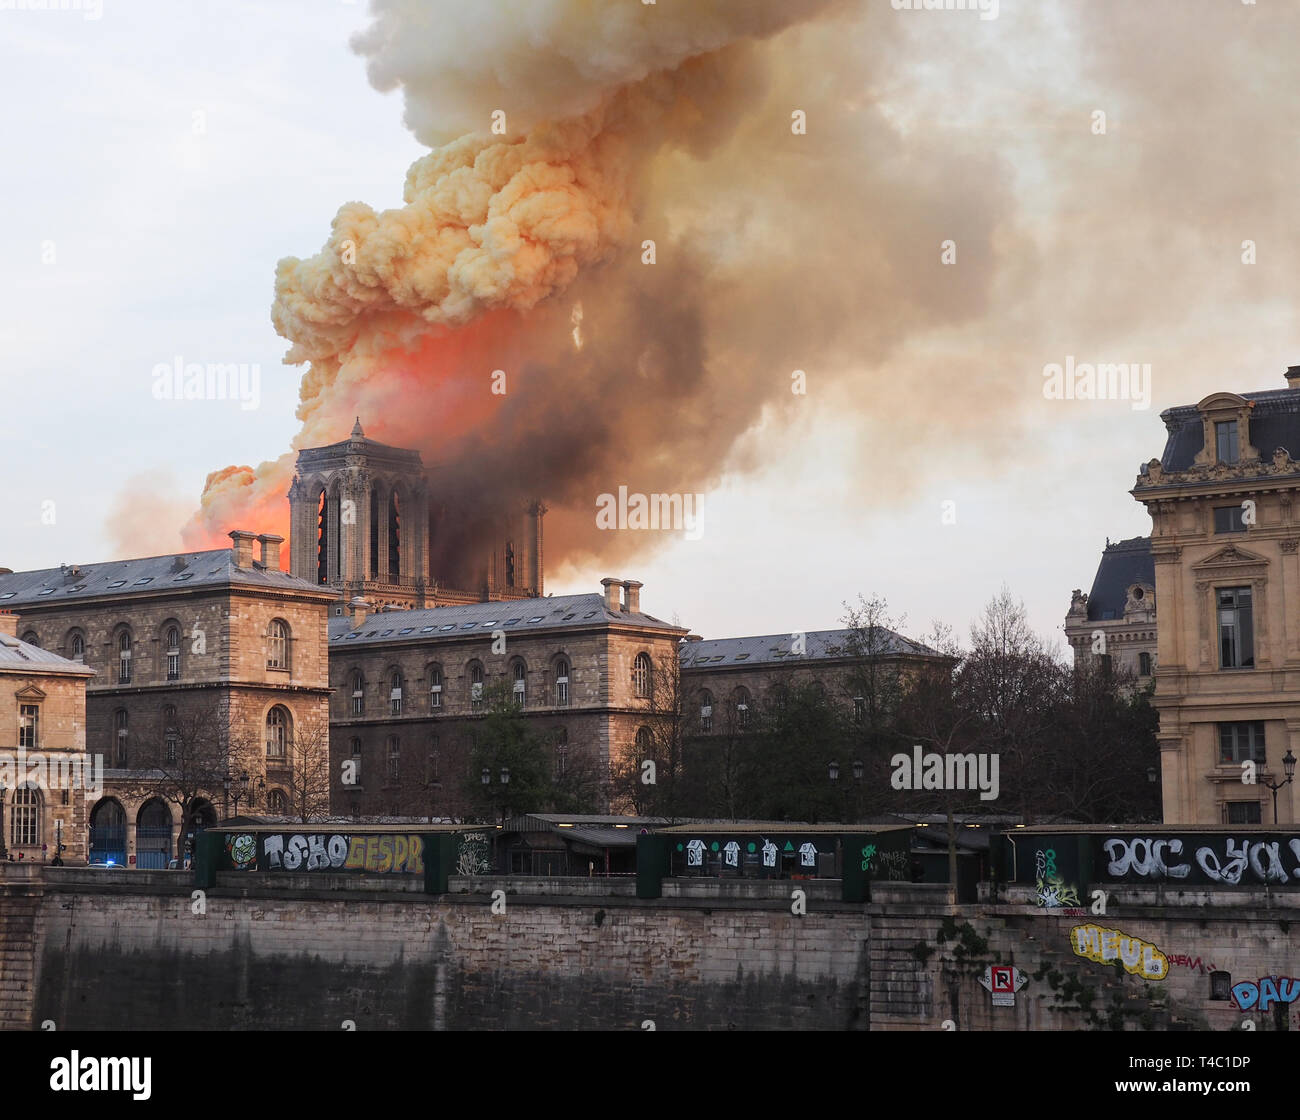 "Paris, France. Apr 15, 2019. Une énorme colonne de fumée est au-dessus de l'un des plus célèbres monuments - Cathédrale Notre-Dame de Paris. Le maire de la capitale française parle d'un ""terrible incendie'. Photo : Christian Böhmer/dpa dpa : Crédit photo alliance/Alamy Live News Photo Stock"